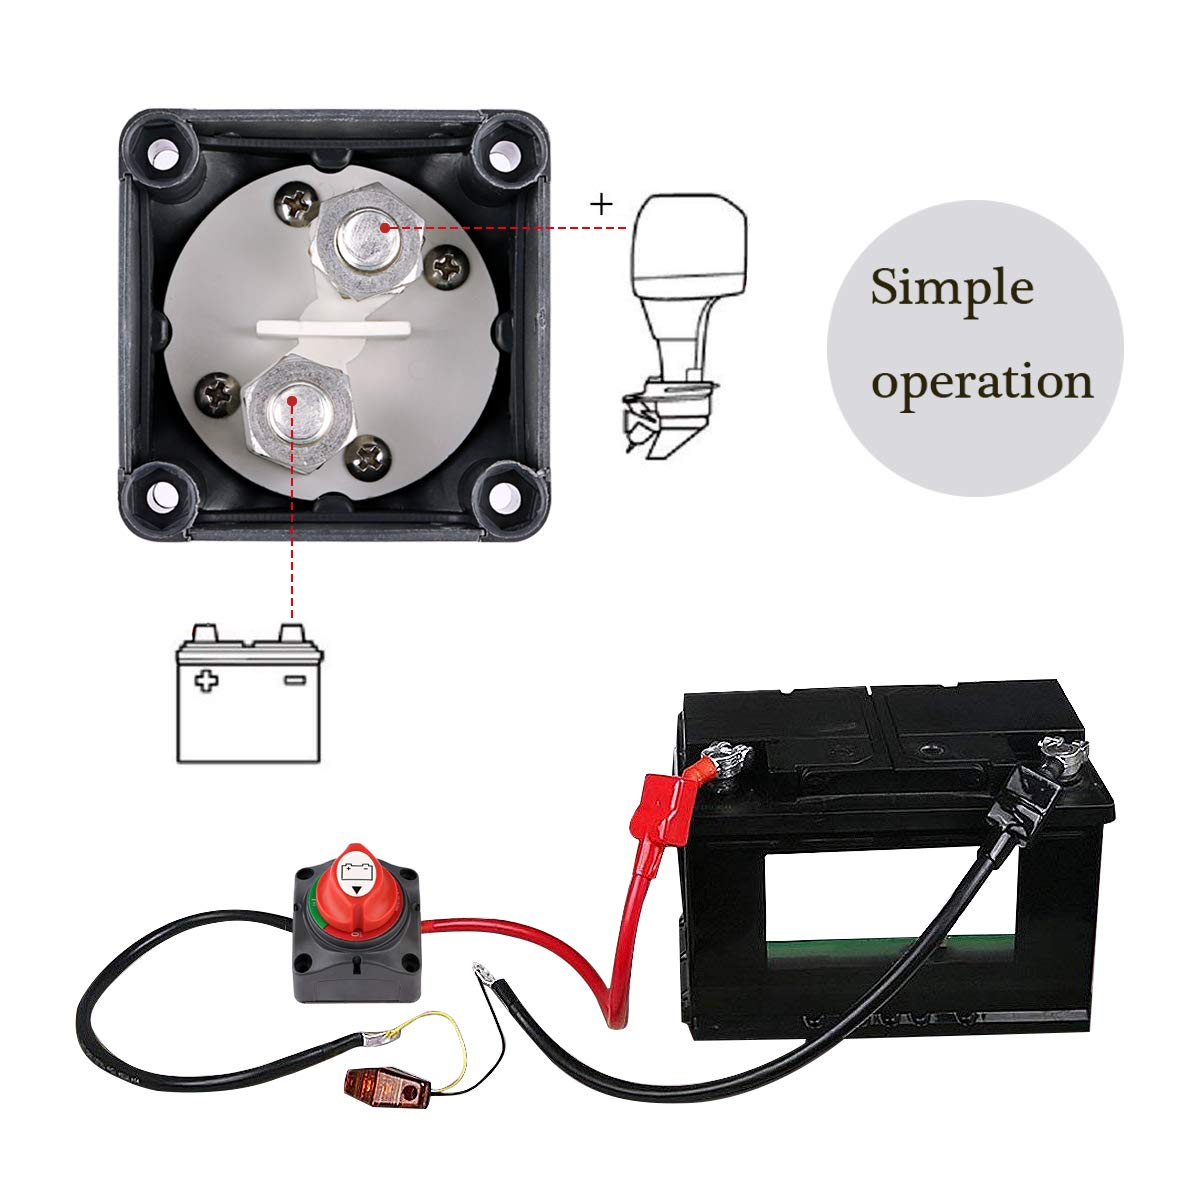 Sdootauto 12V//24V Waterproof Battery Isolator Switch Master Isolator Heavy Duty Battery Disconnect Power Cut Off Switch for Marine Boat Car RV Vehicle RV Battery Disconnect Switch